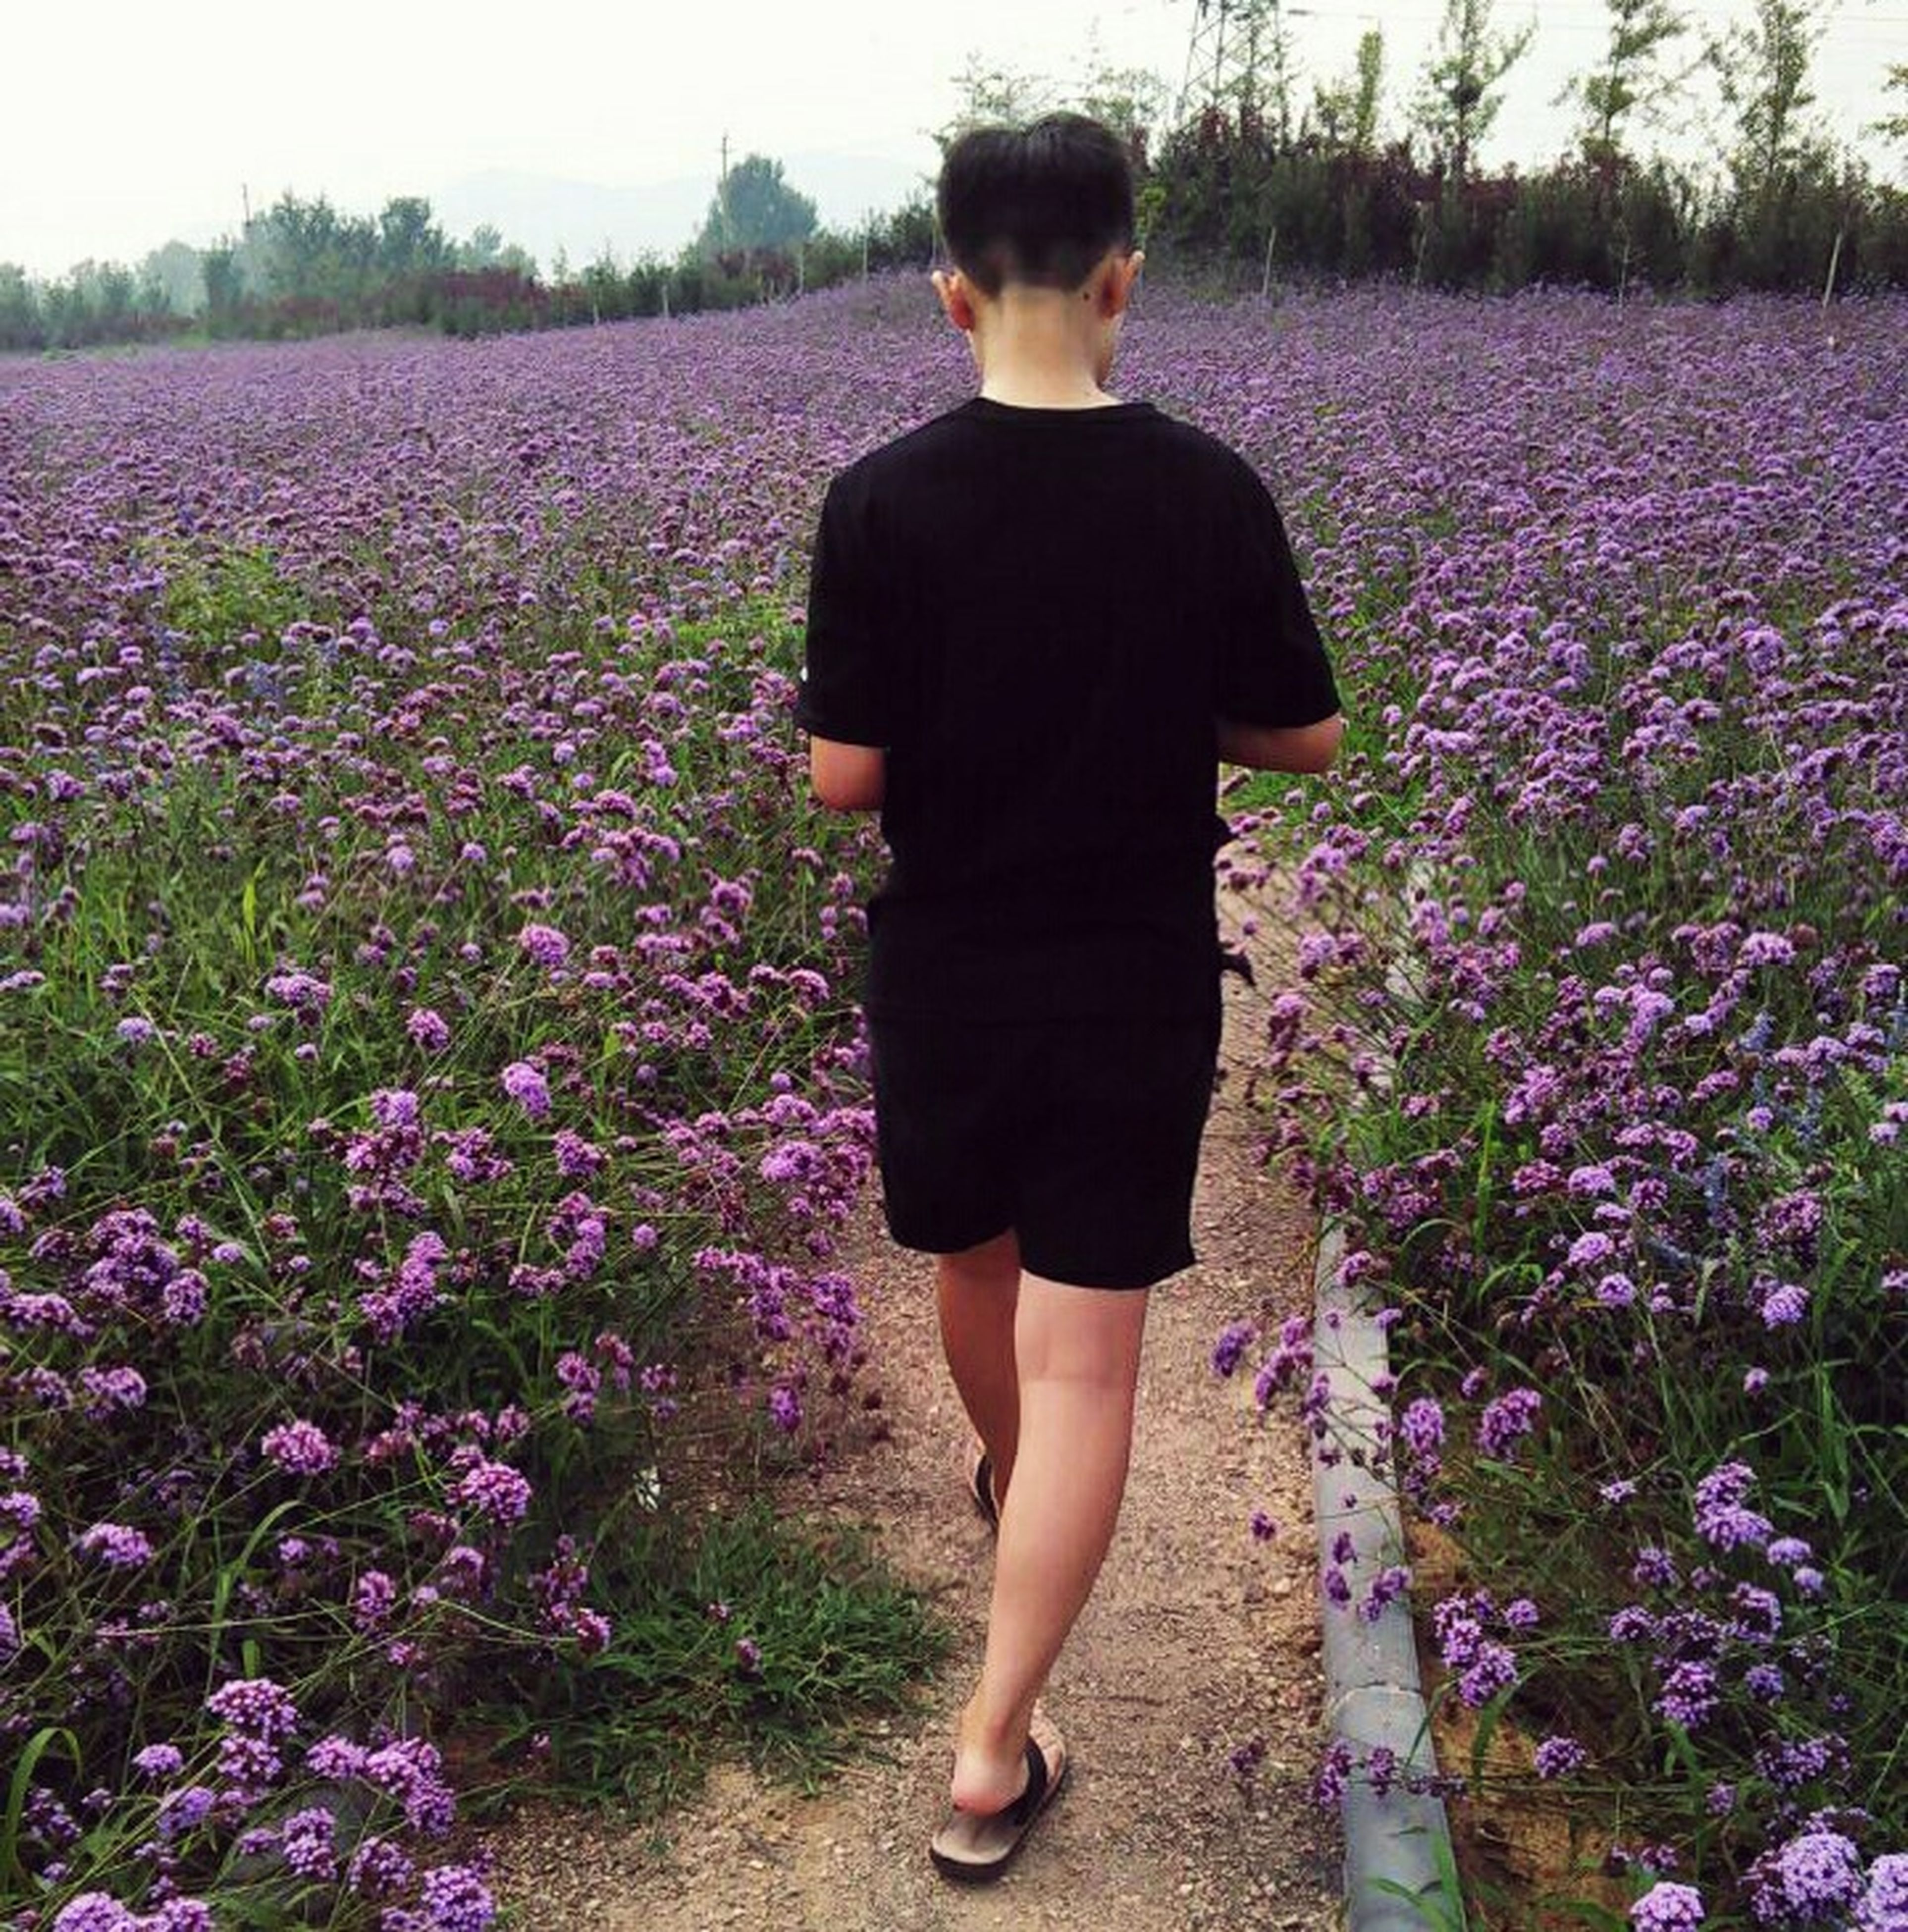 flower, lifestyles, standing, casual clothing, growth, leisure activity, beauty in nature, field, plant, nature, freshness, outdoors, fragility, day, tranquility, tranquil scene, blossom, grass, landscape, in bloom, pink color, blooming